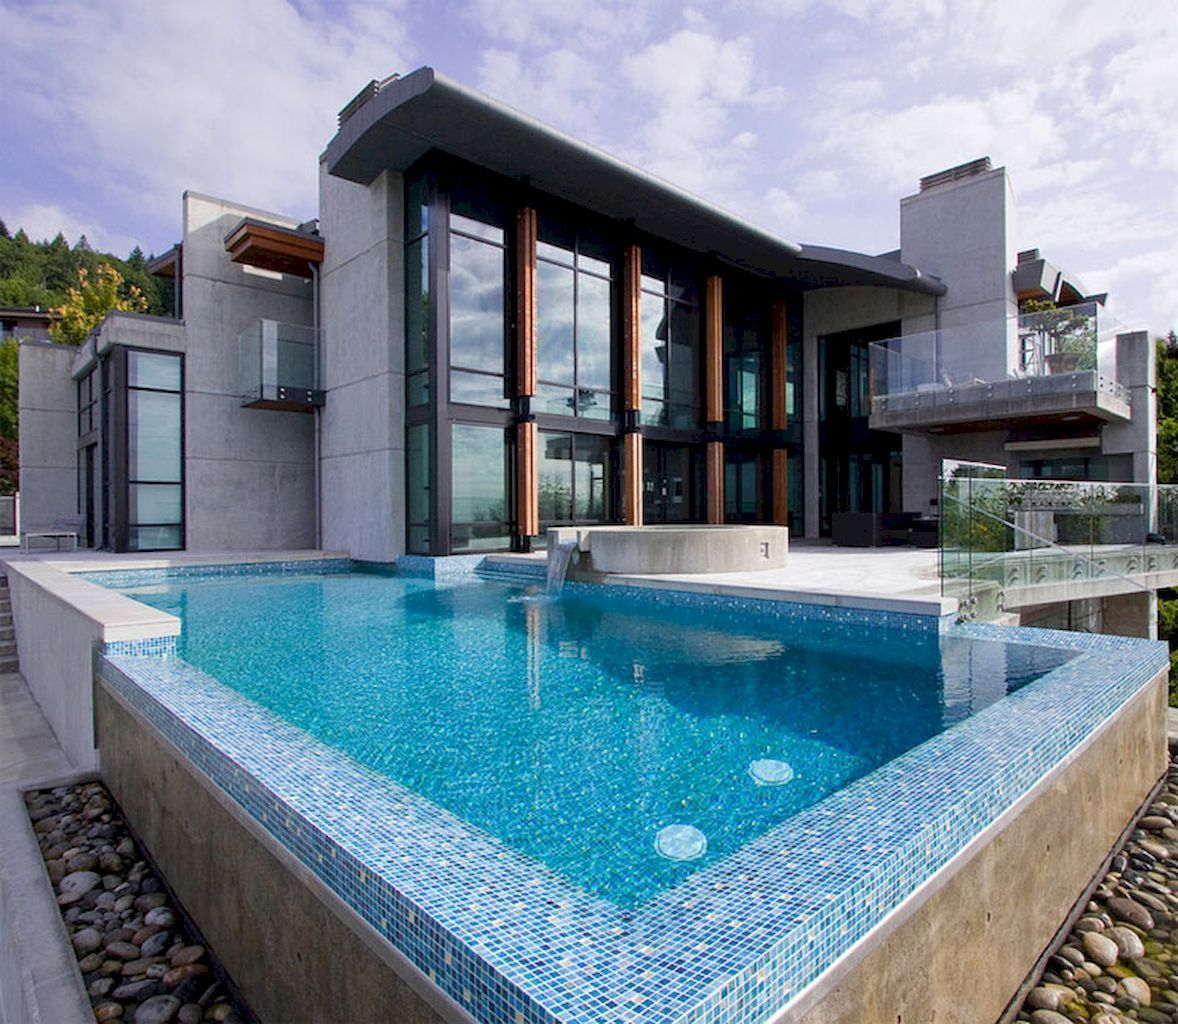 How To Winterize An Above Ground Pool A Complete Guide Swimming